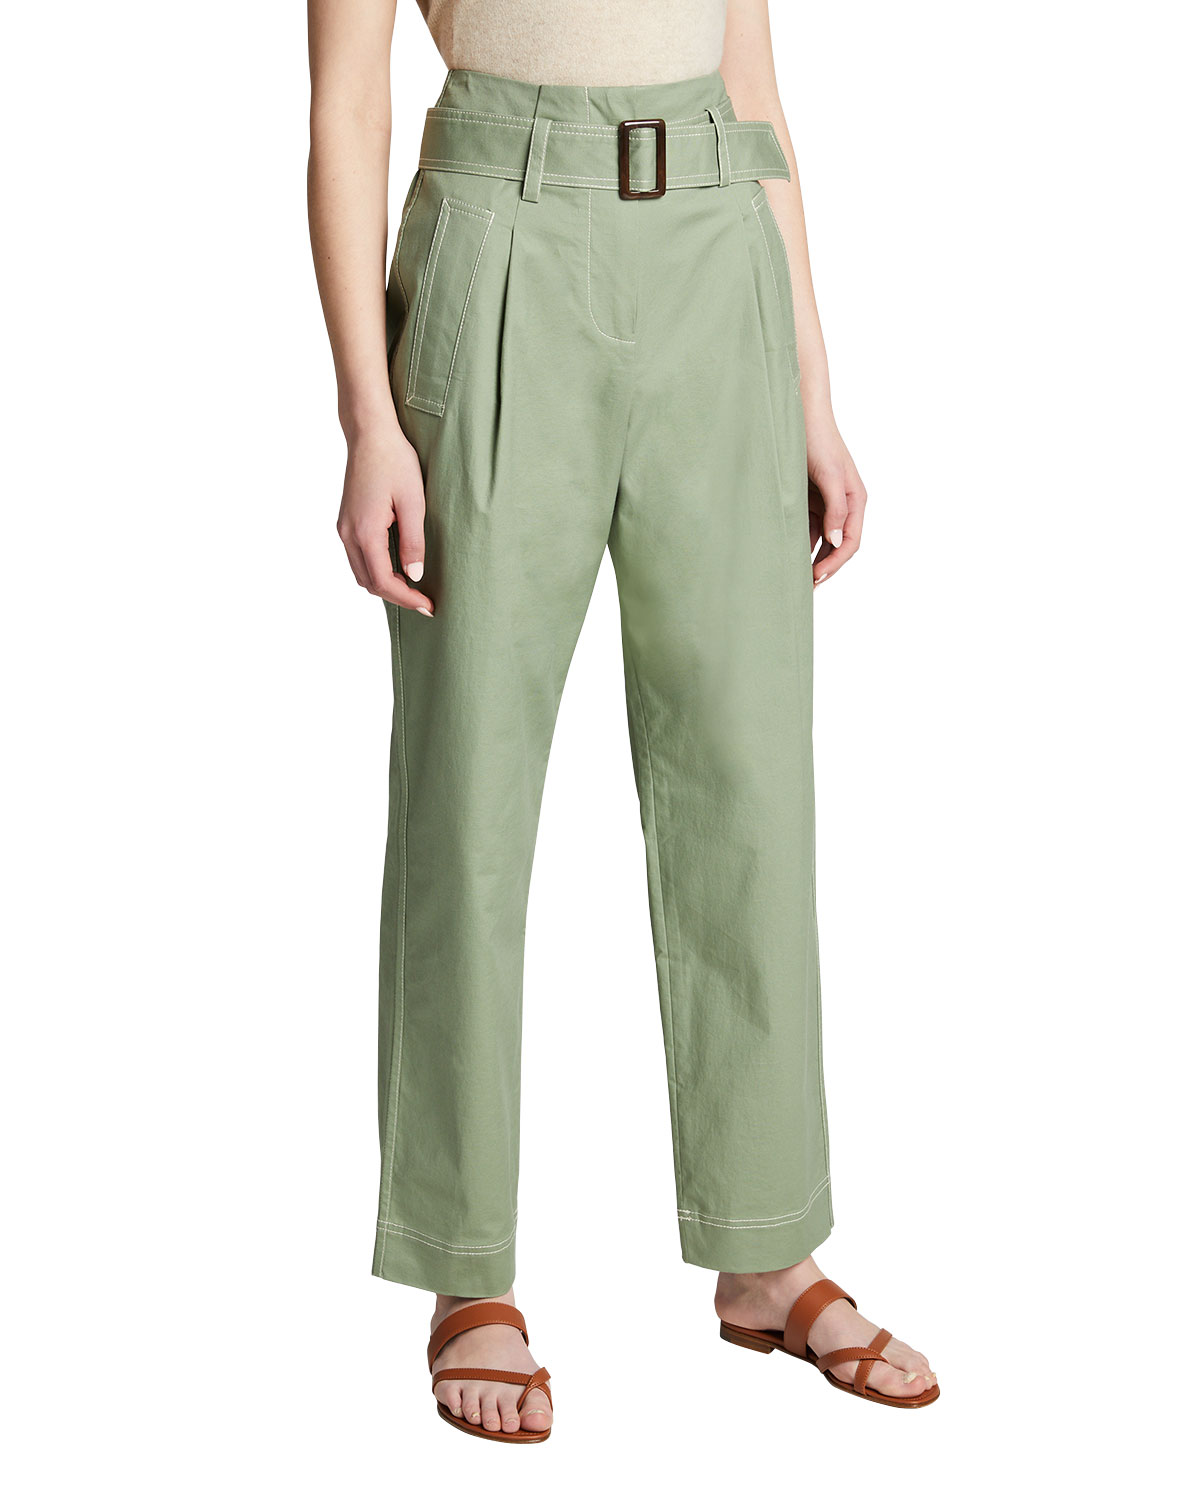 Andie Topstitch Belted Utility Pants